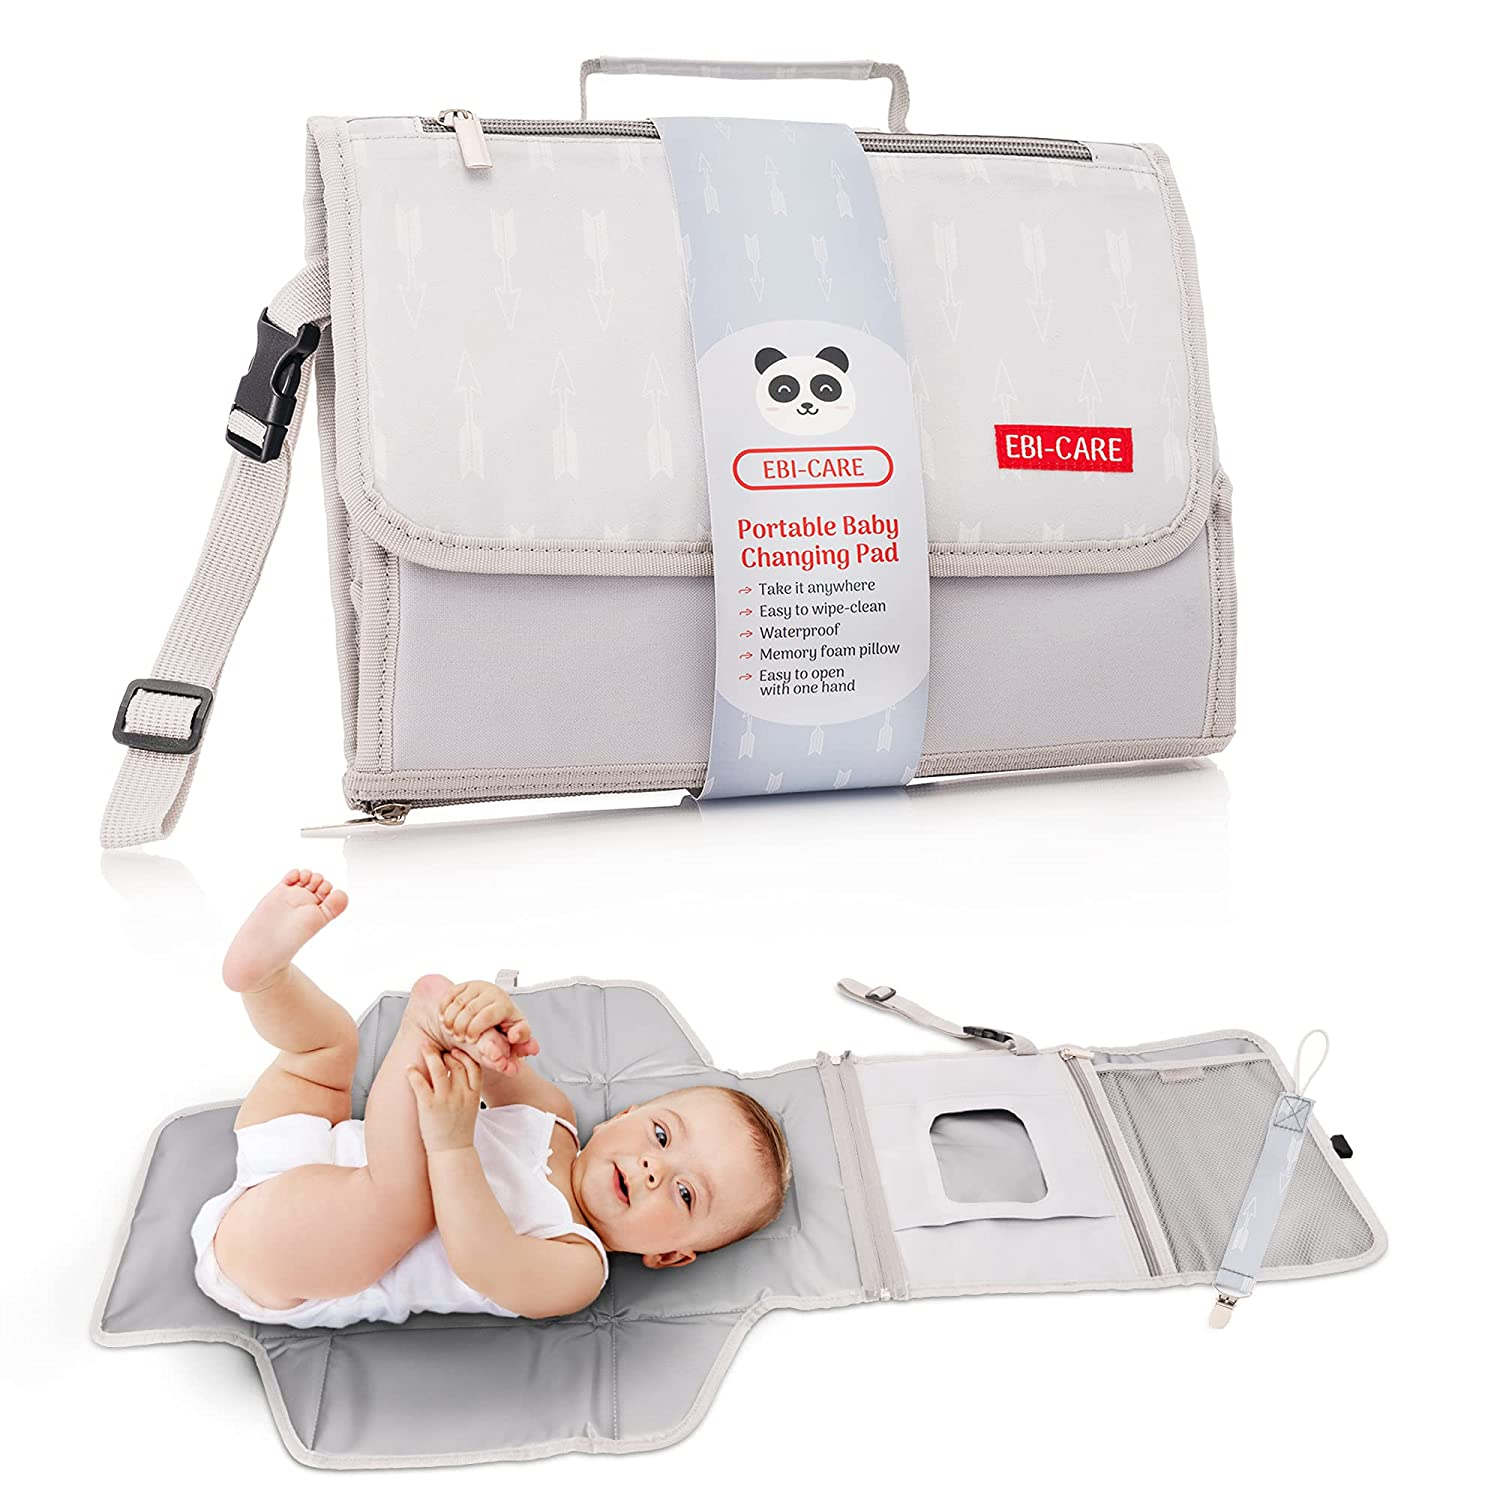 Portable Diaper Changing Pad, Easy to Carry Baby Changing Pad for Moms and Dads, Waterproof Travel Changing Mat Fully Padded for Higher Comfort, Portable Changing Pad, Great Baby Gift by Ebi Care